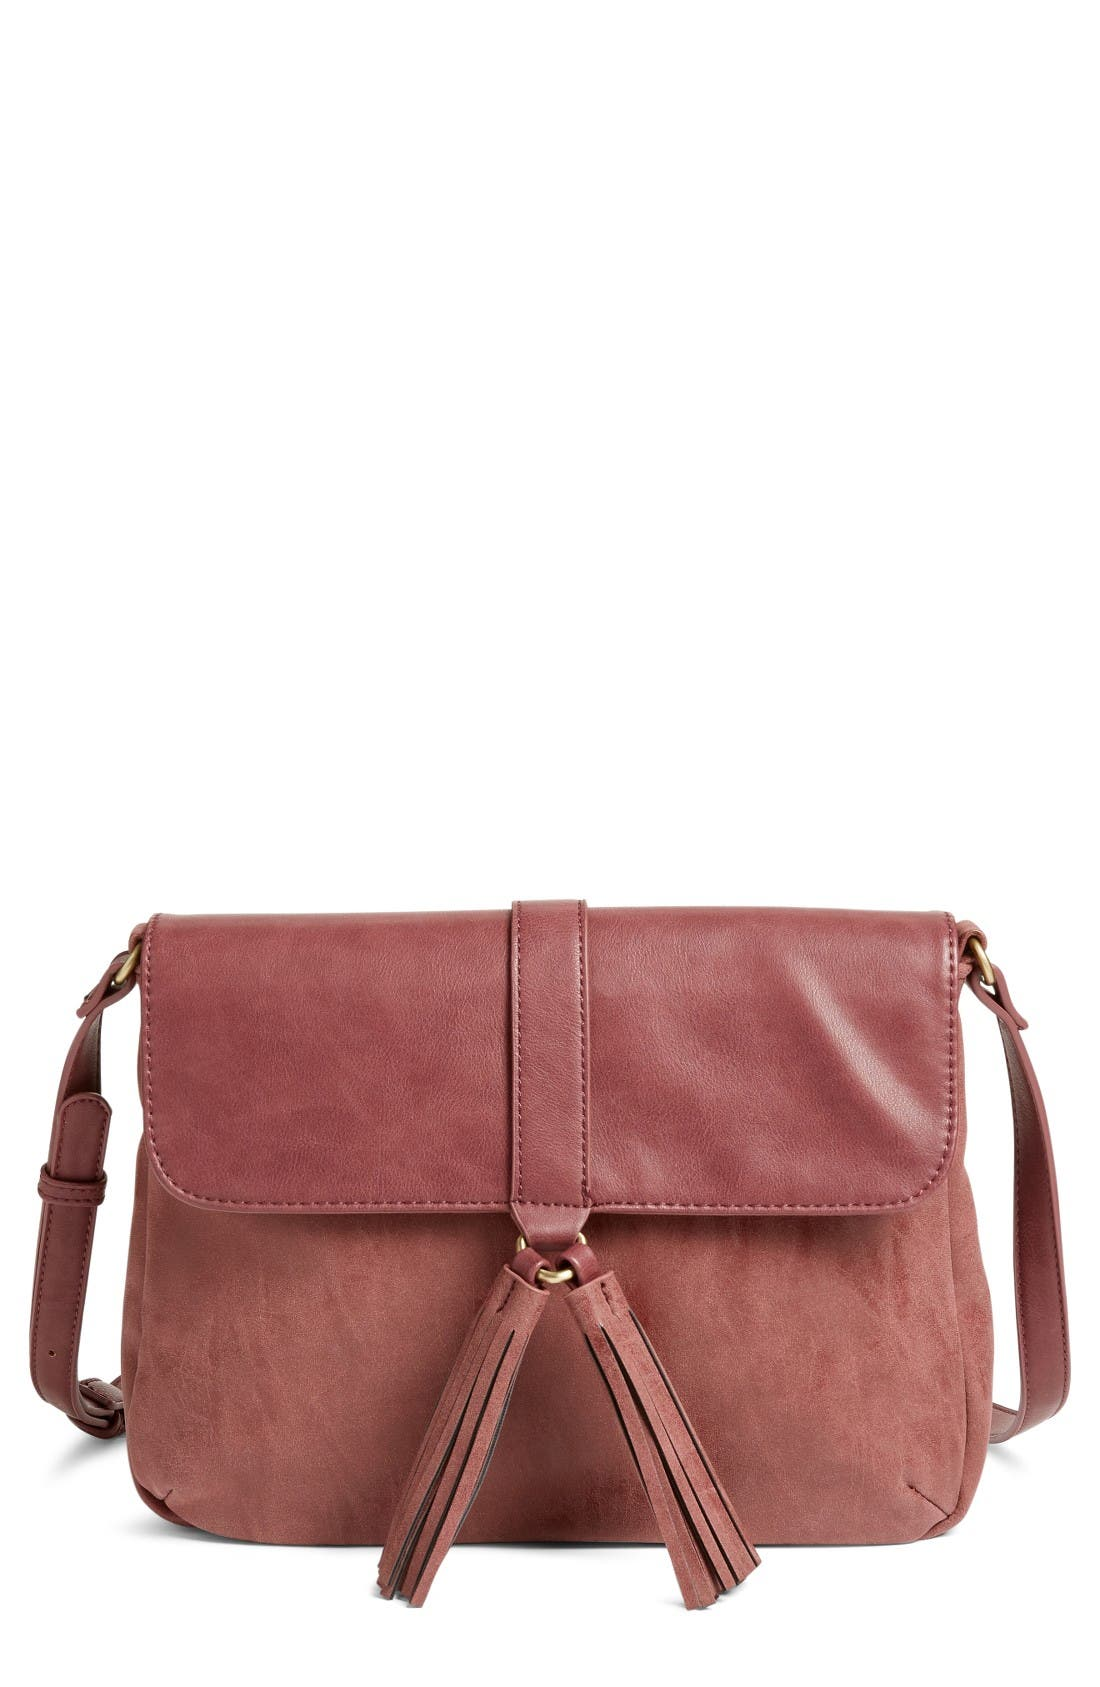 Alternate Image 1 Selected - Emperia Saydie Tassel Faux Leather Crossbody Bag (Special Purchase)